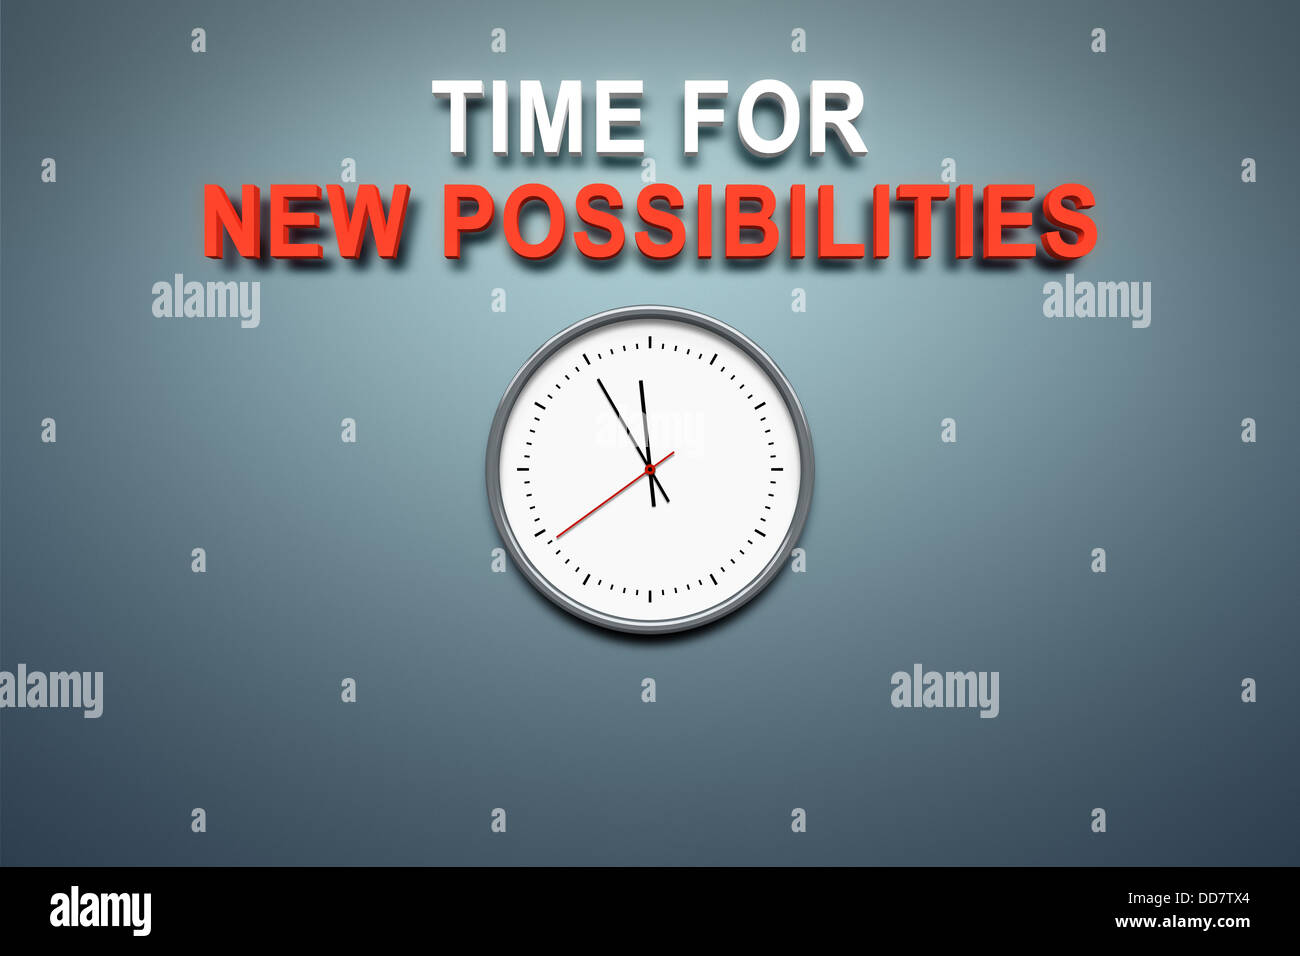 Time for new possibilities at the wall - Stock Image